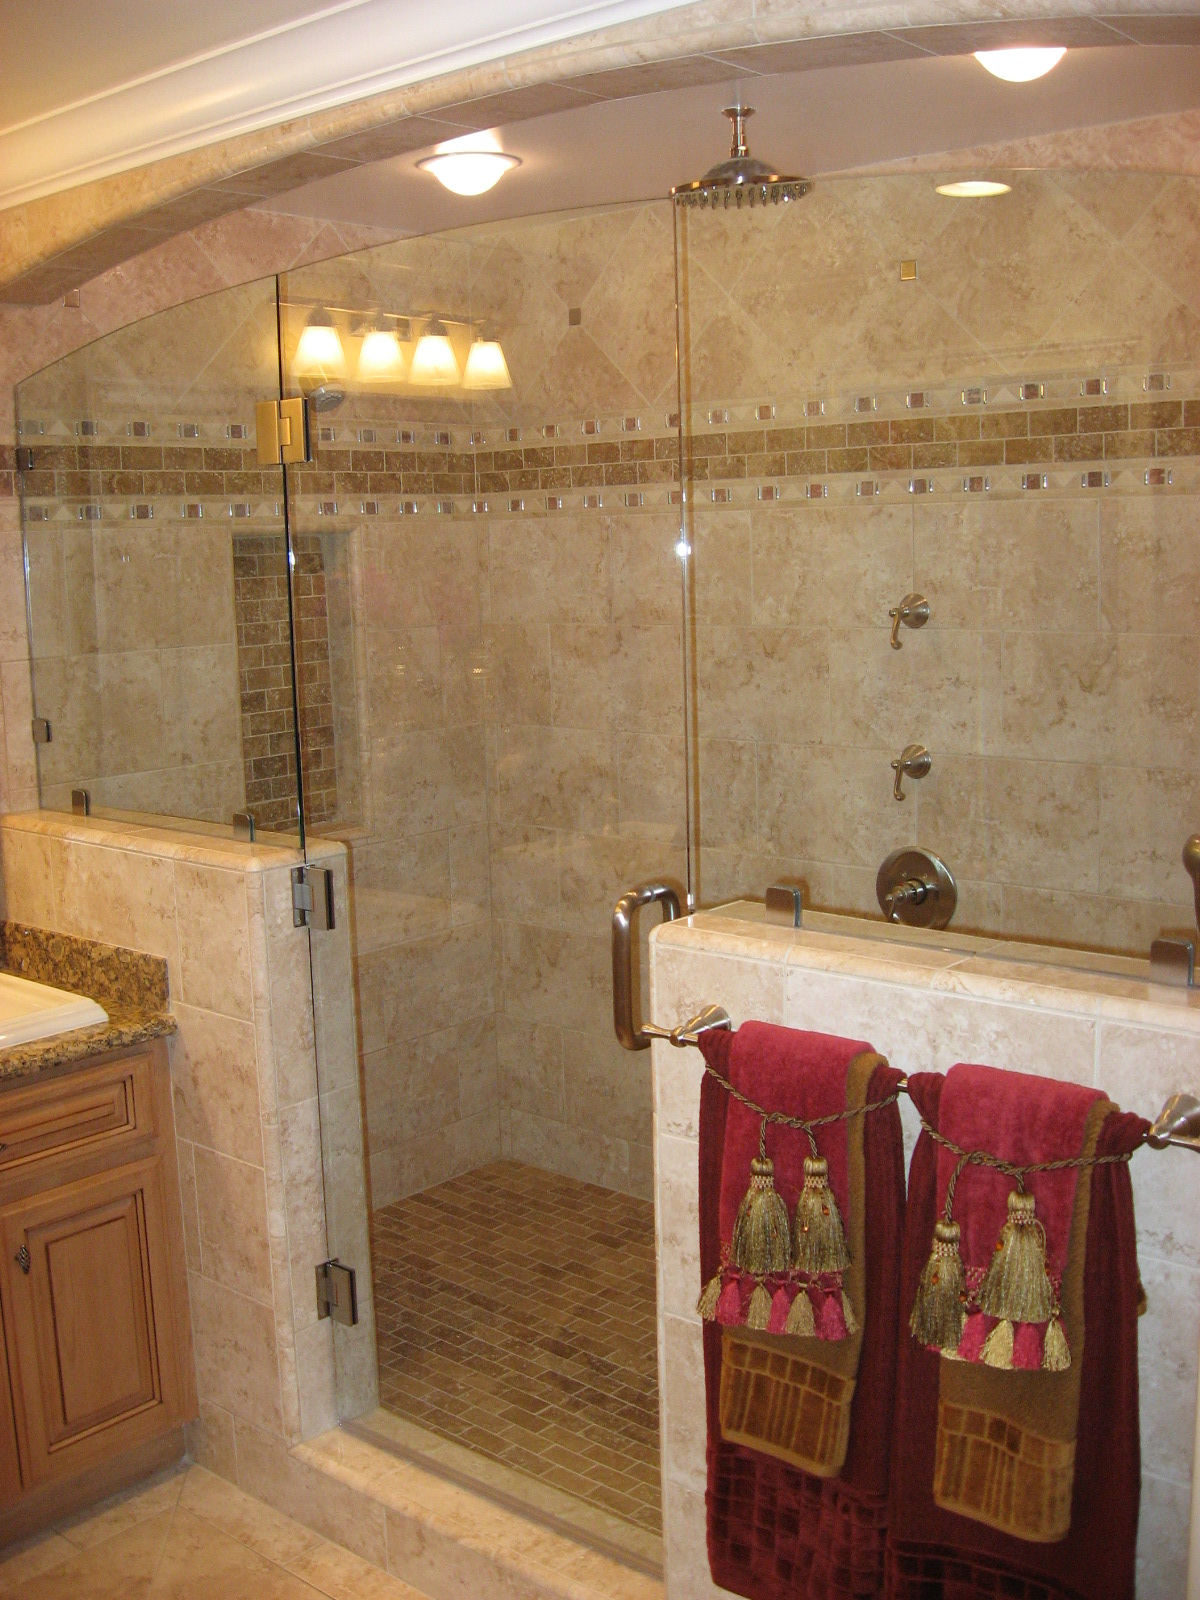 small bathroom shower tile ideas bathroom remodel - Shower Design Ideas Small Bathroom